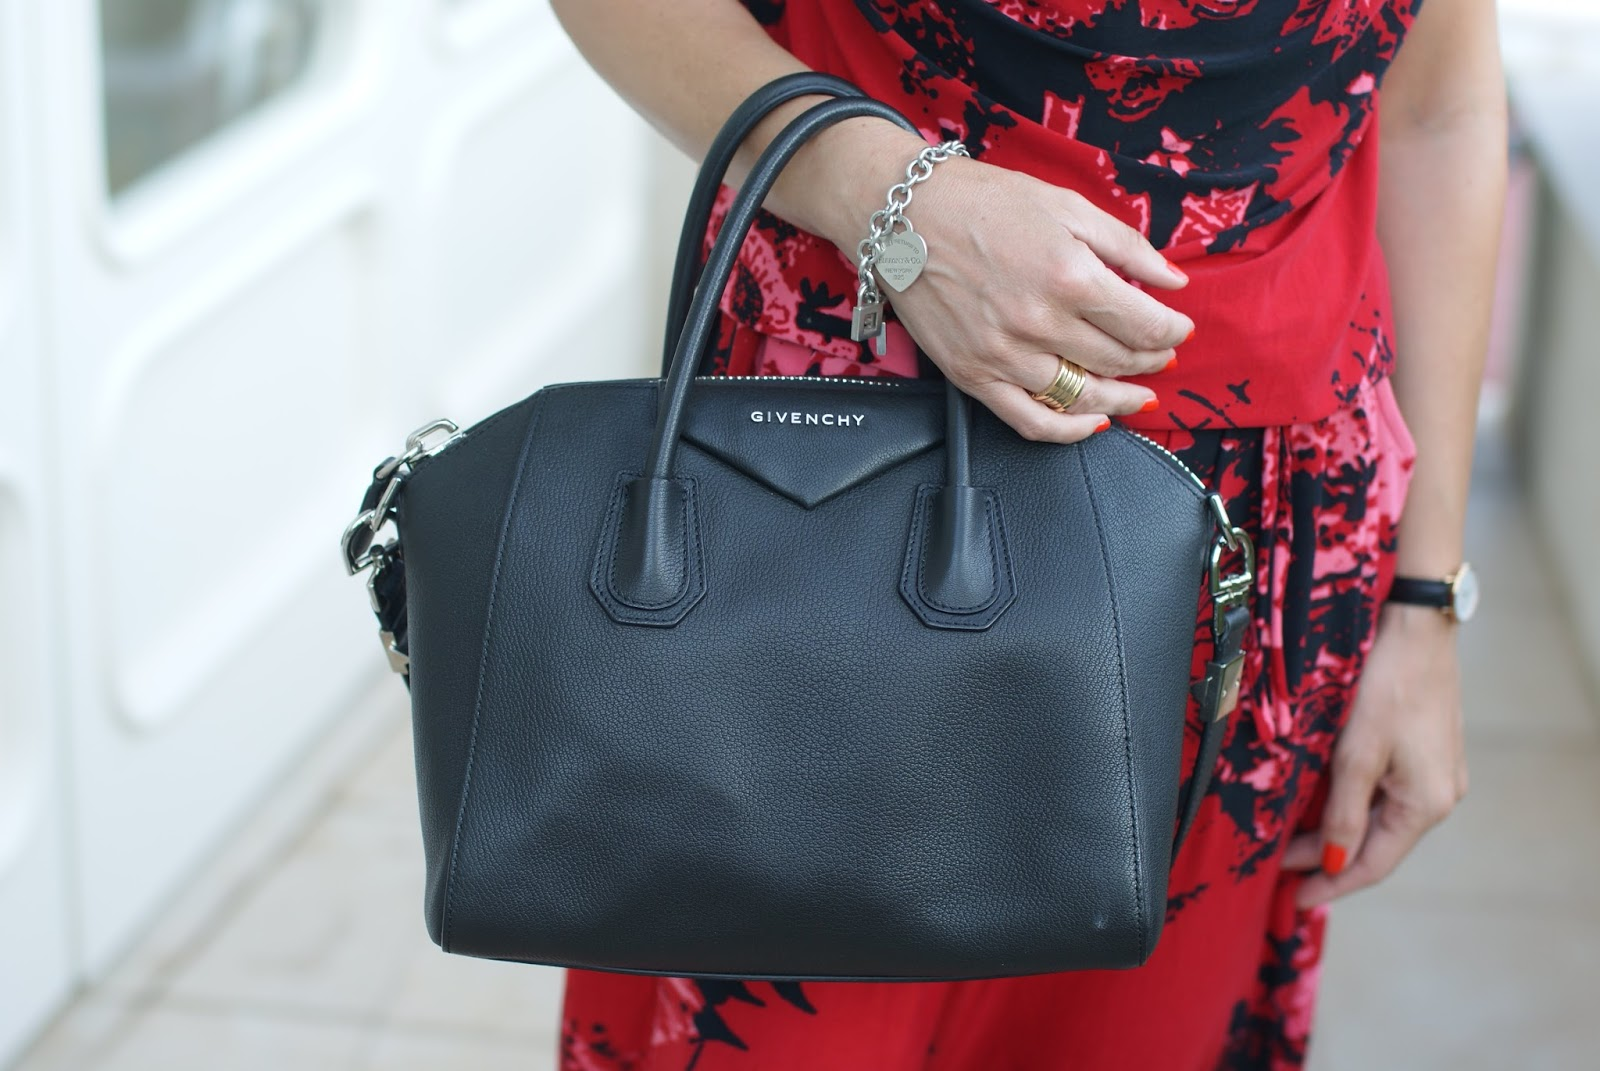 Givenchy Antigona bag small size on Fashion and Cookies fashion blog